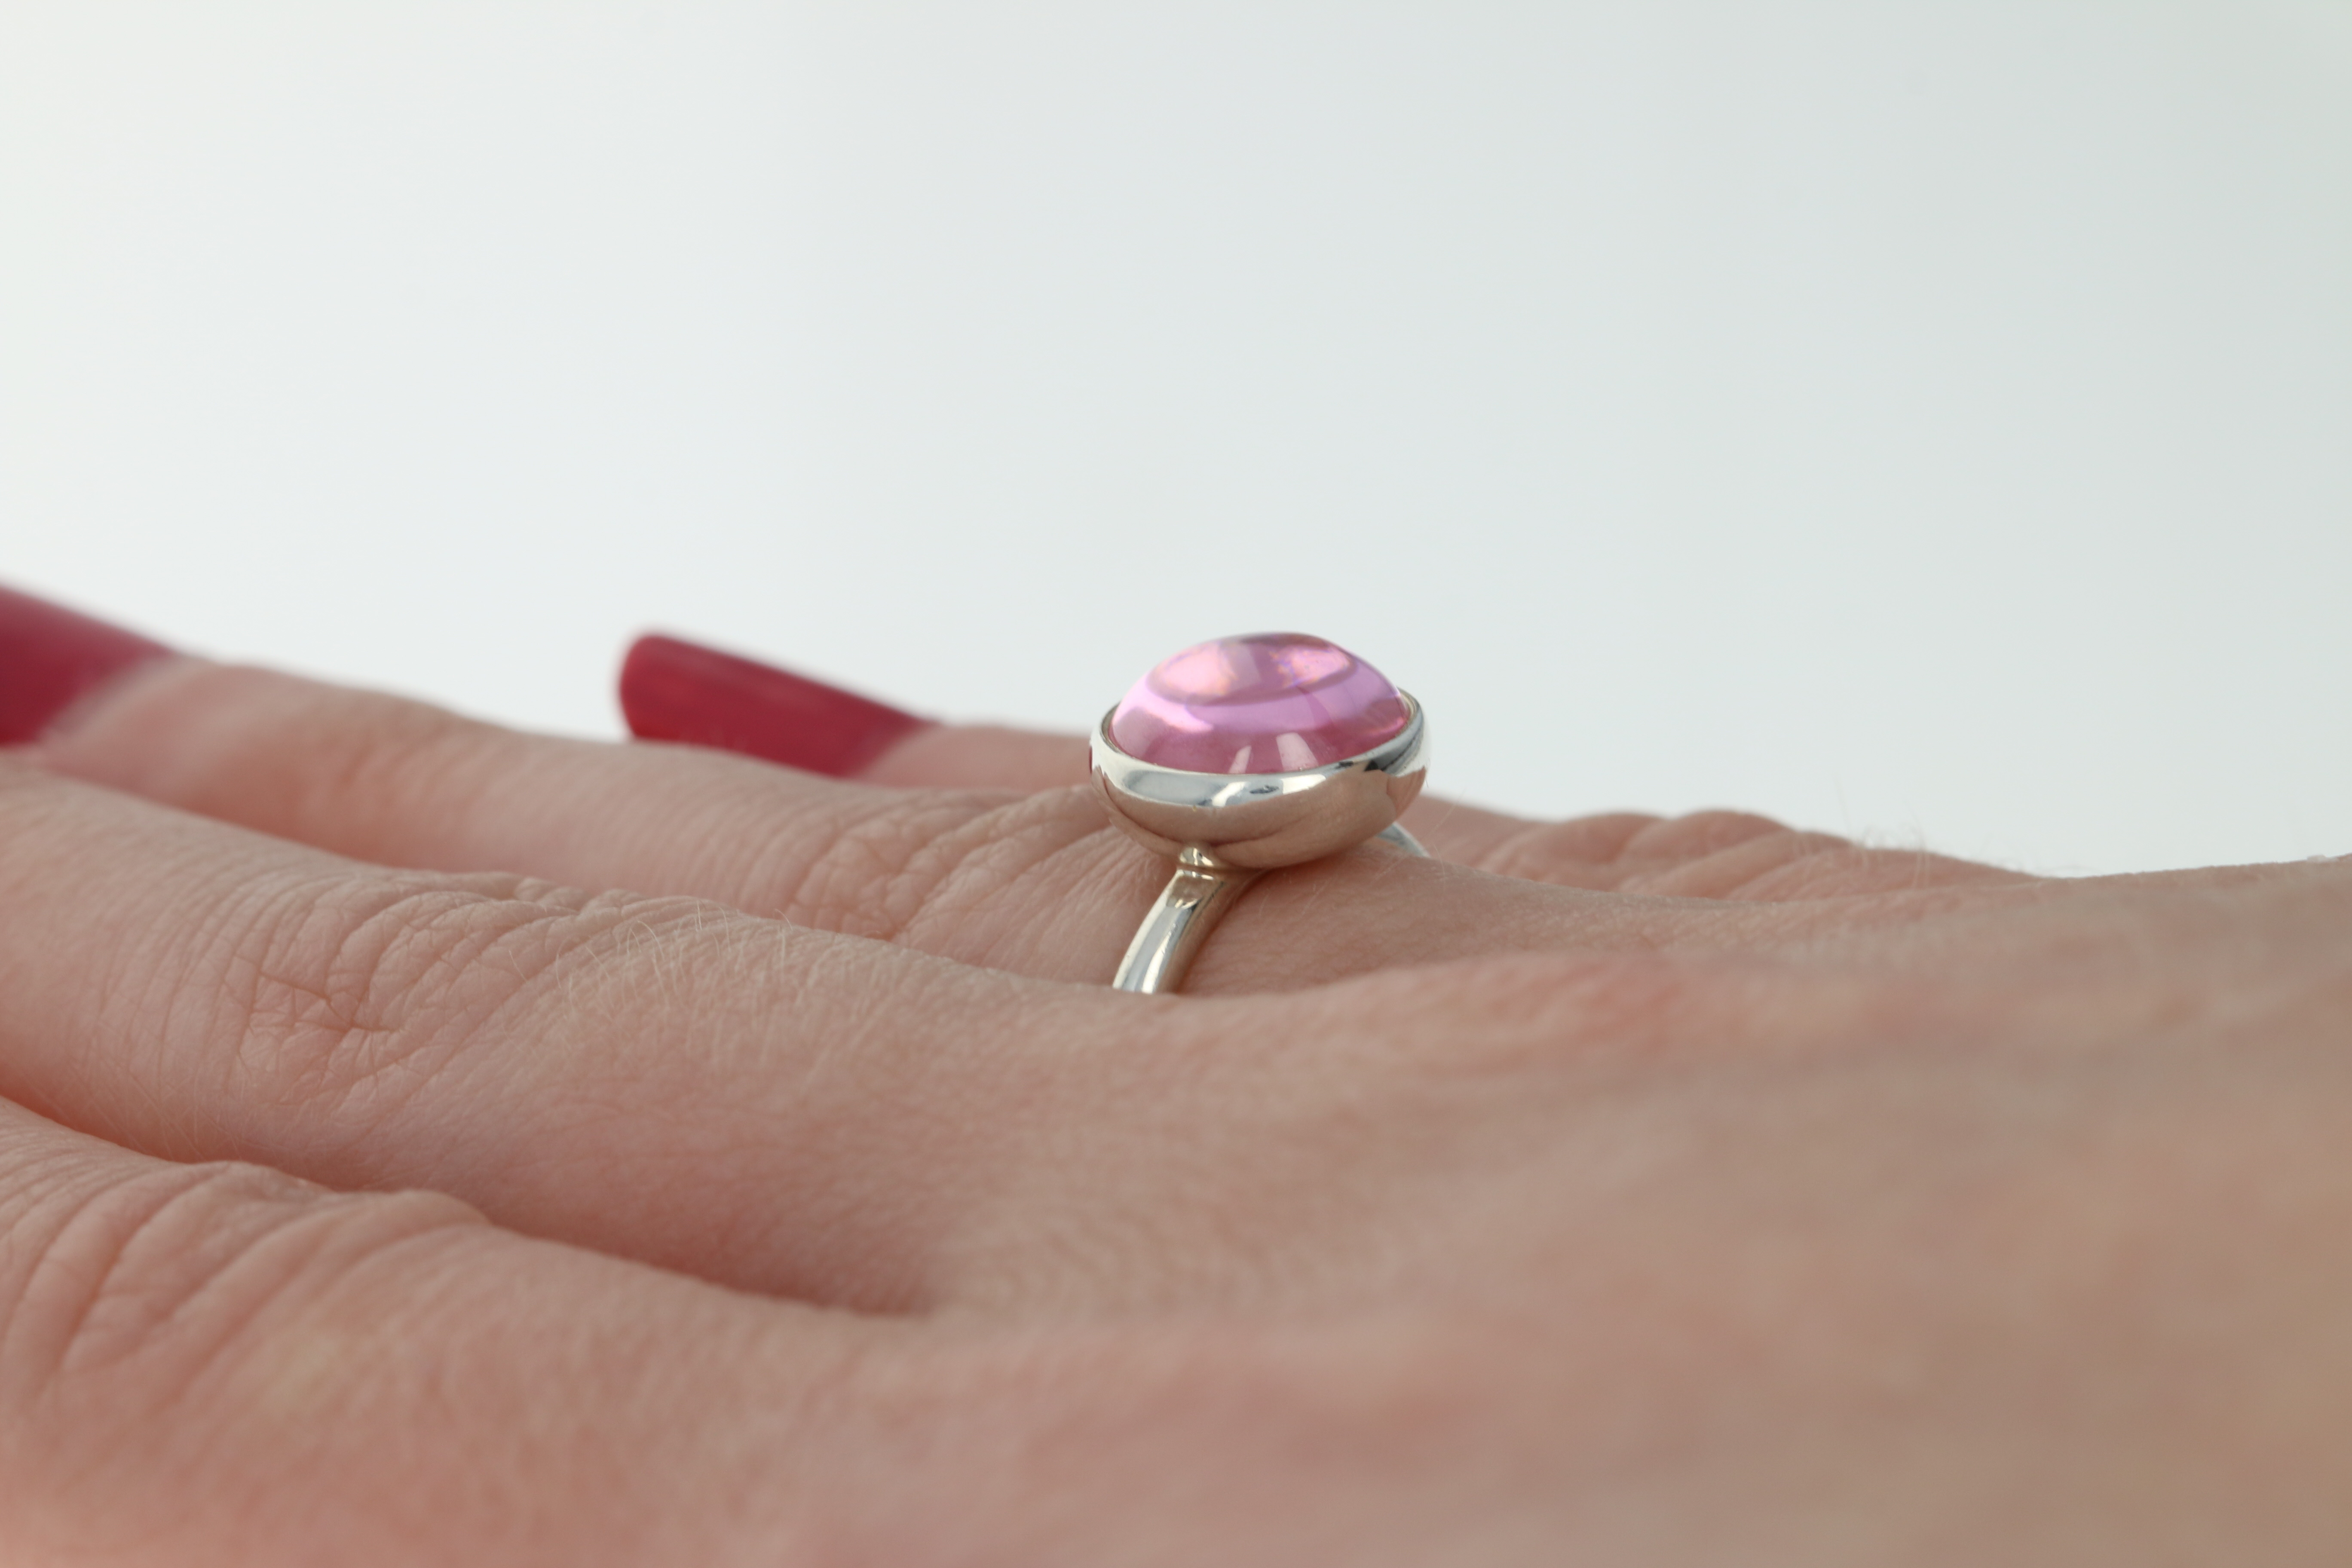 83c2a6daabf77 Details about NEW Pandora Poetic Droplet Ring - Sterling Silver Pink CZ  190982PCZ-52 Retired